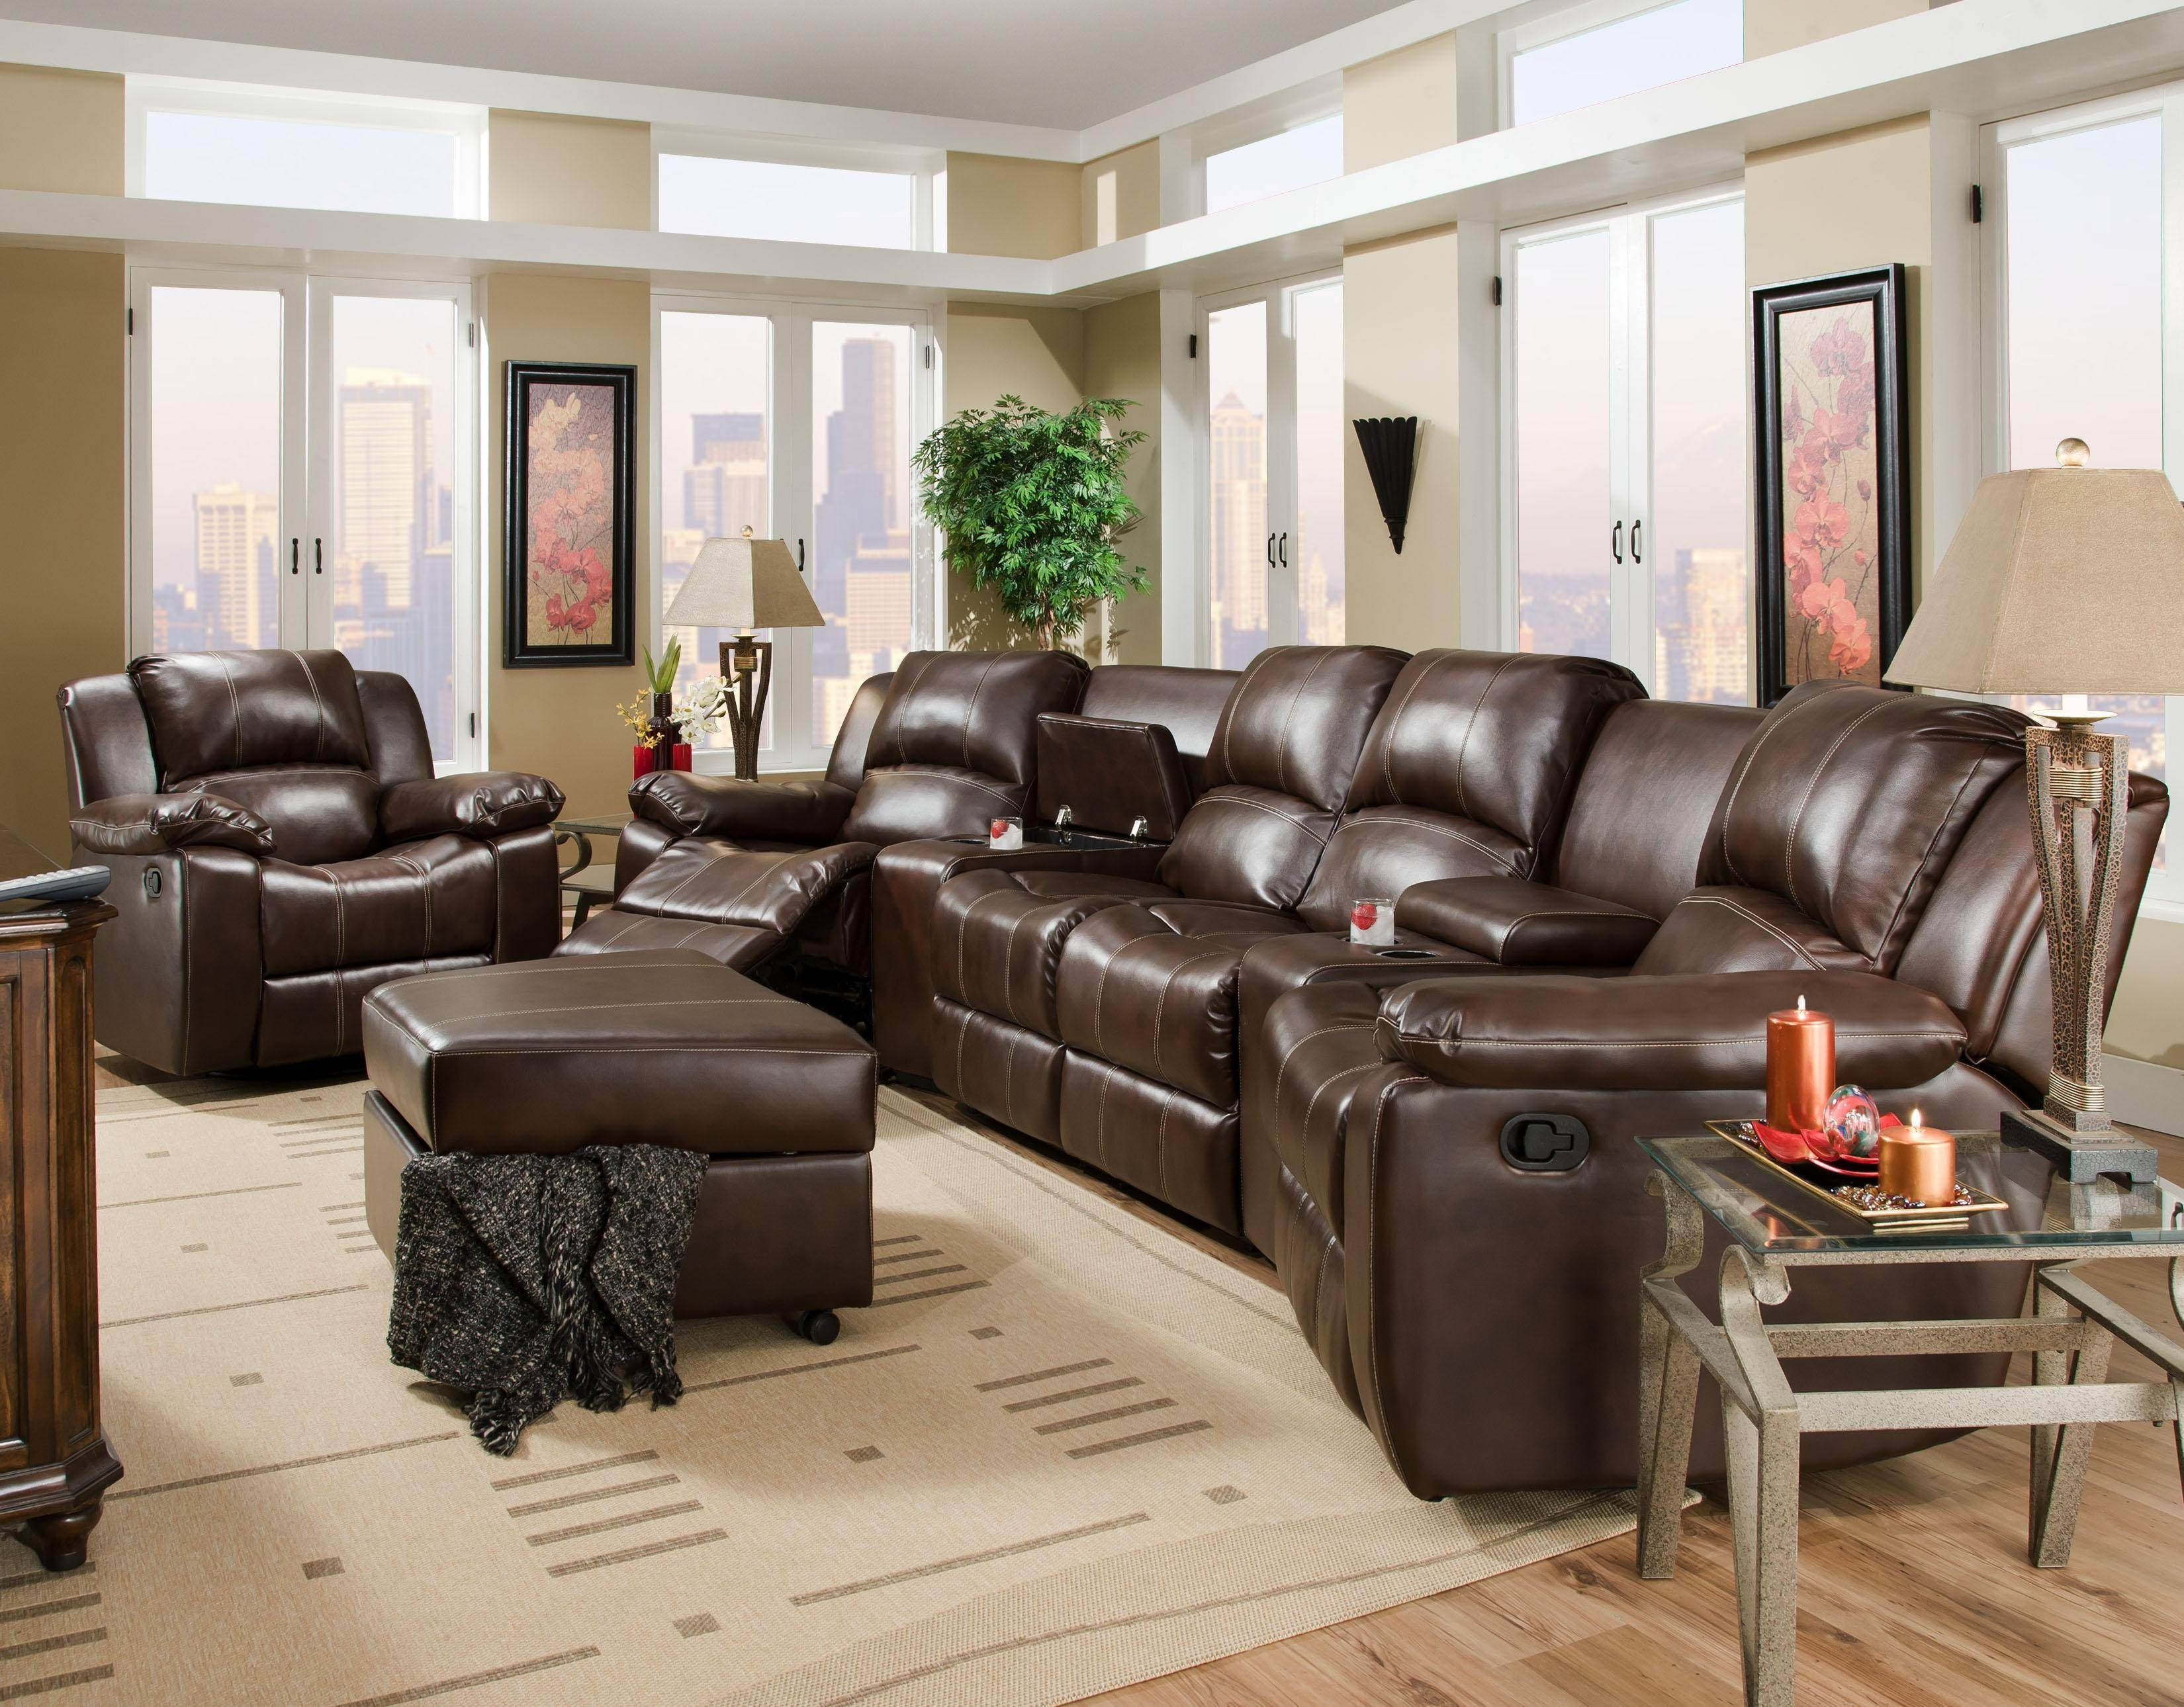 Brady Four Seat Reclining Theater Seating With Storage And with regard to Theatre Sectional Sofas (Image 6 of 30)